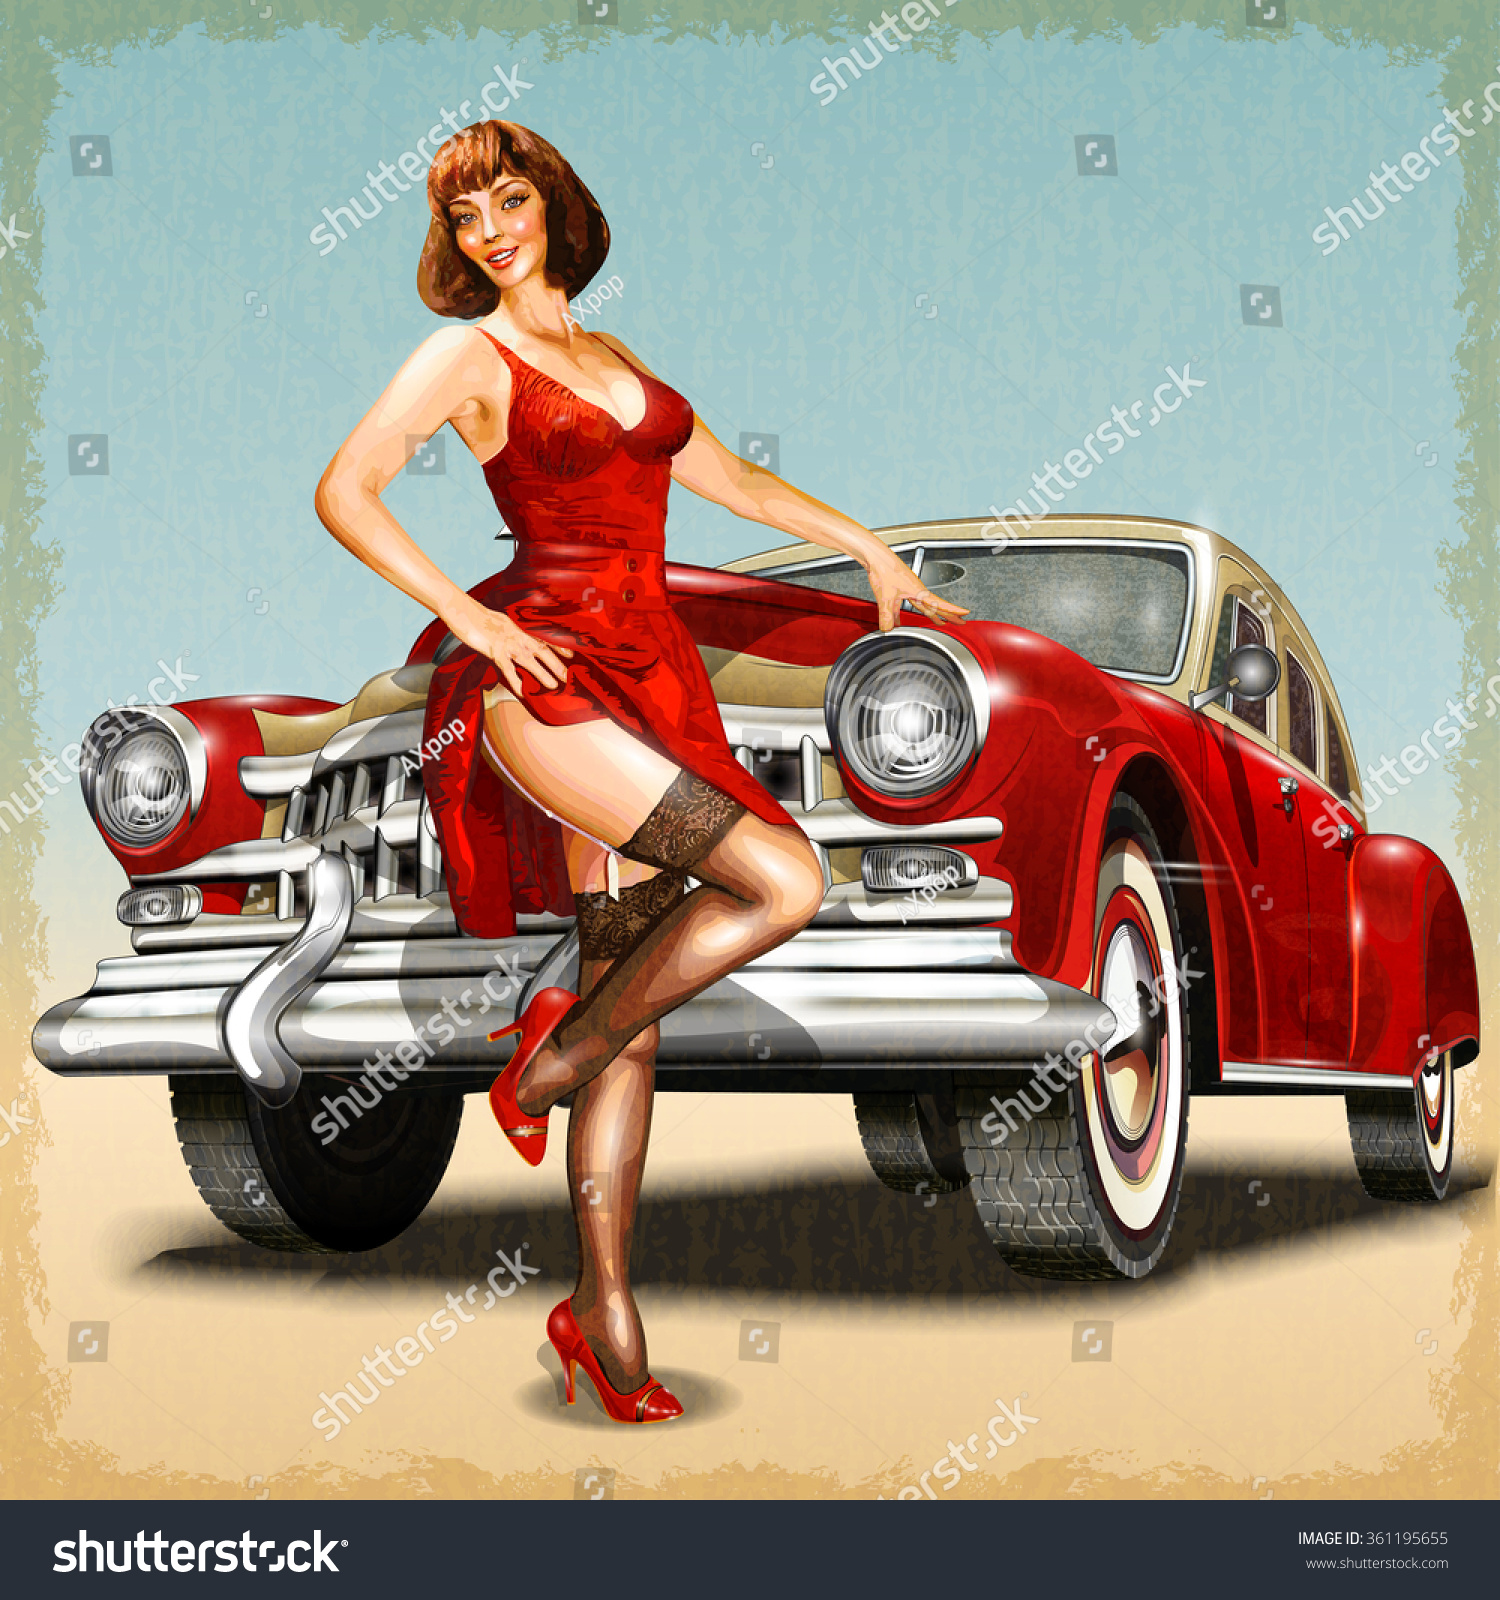 Vintage Gals and Car Photo